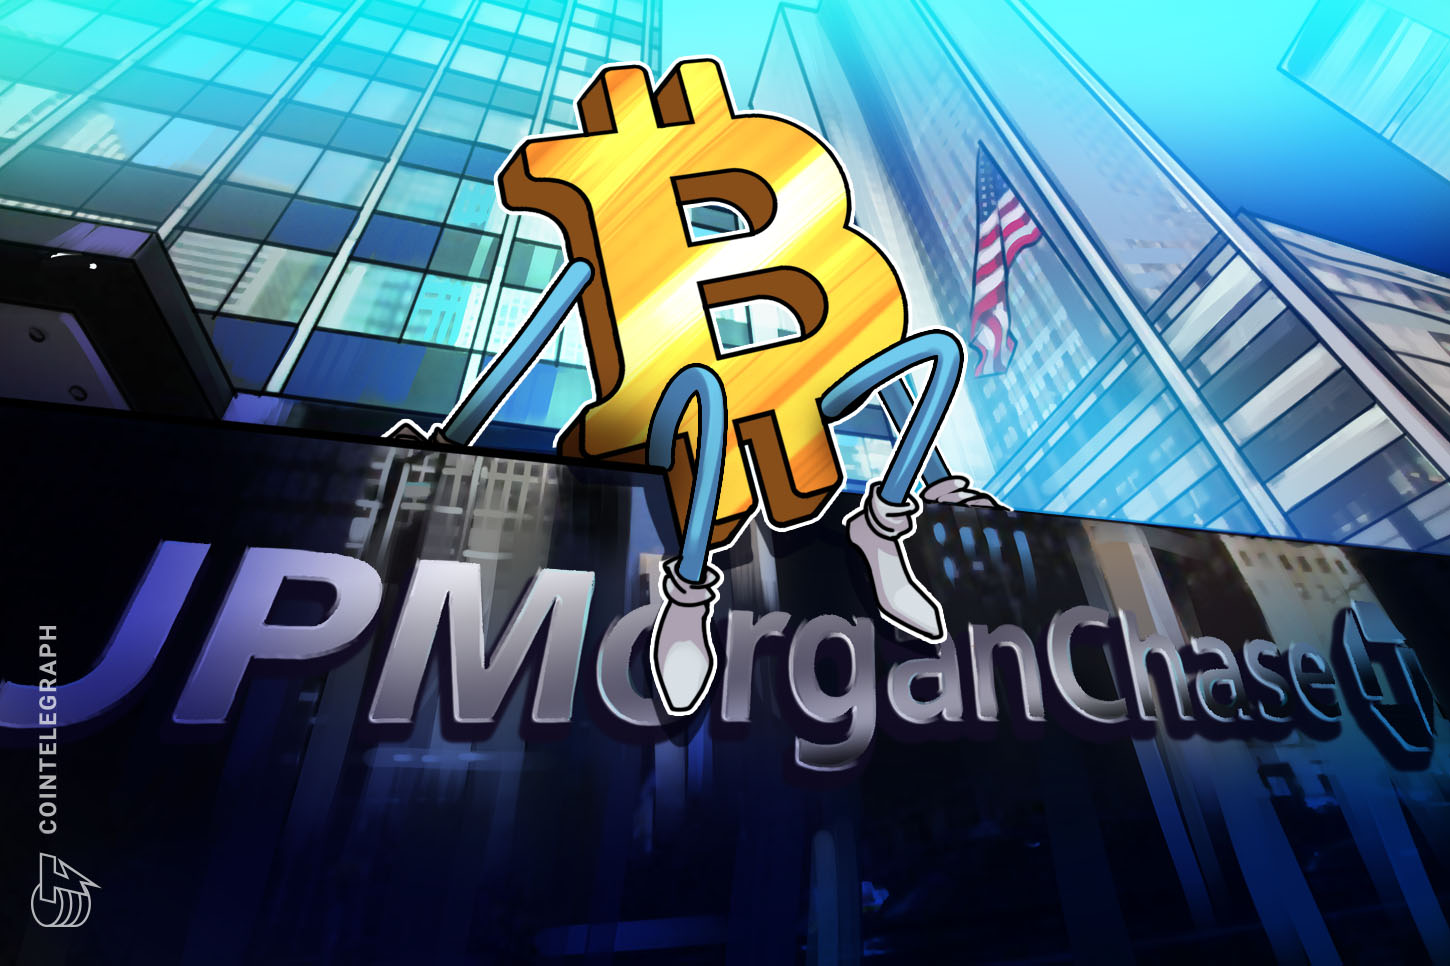 jp morgan cryptocurrency trading